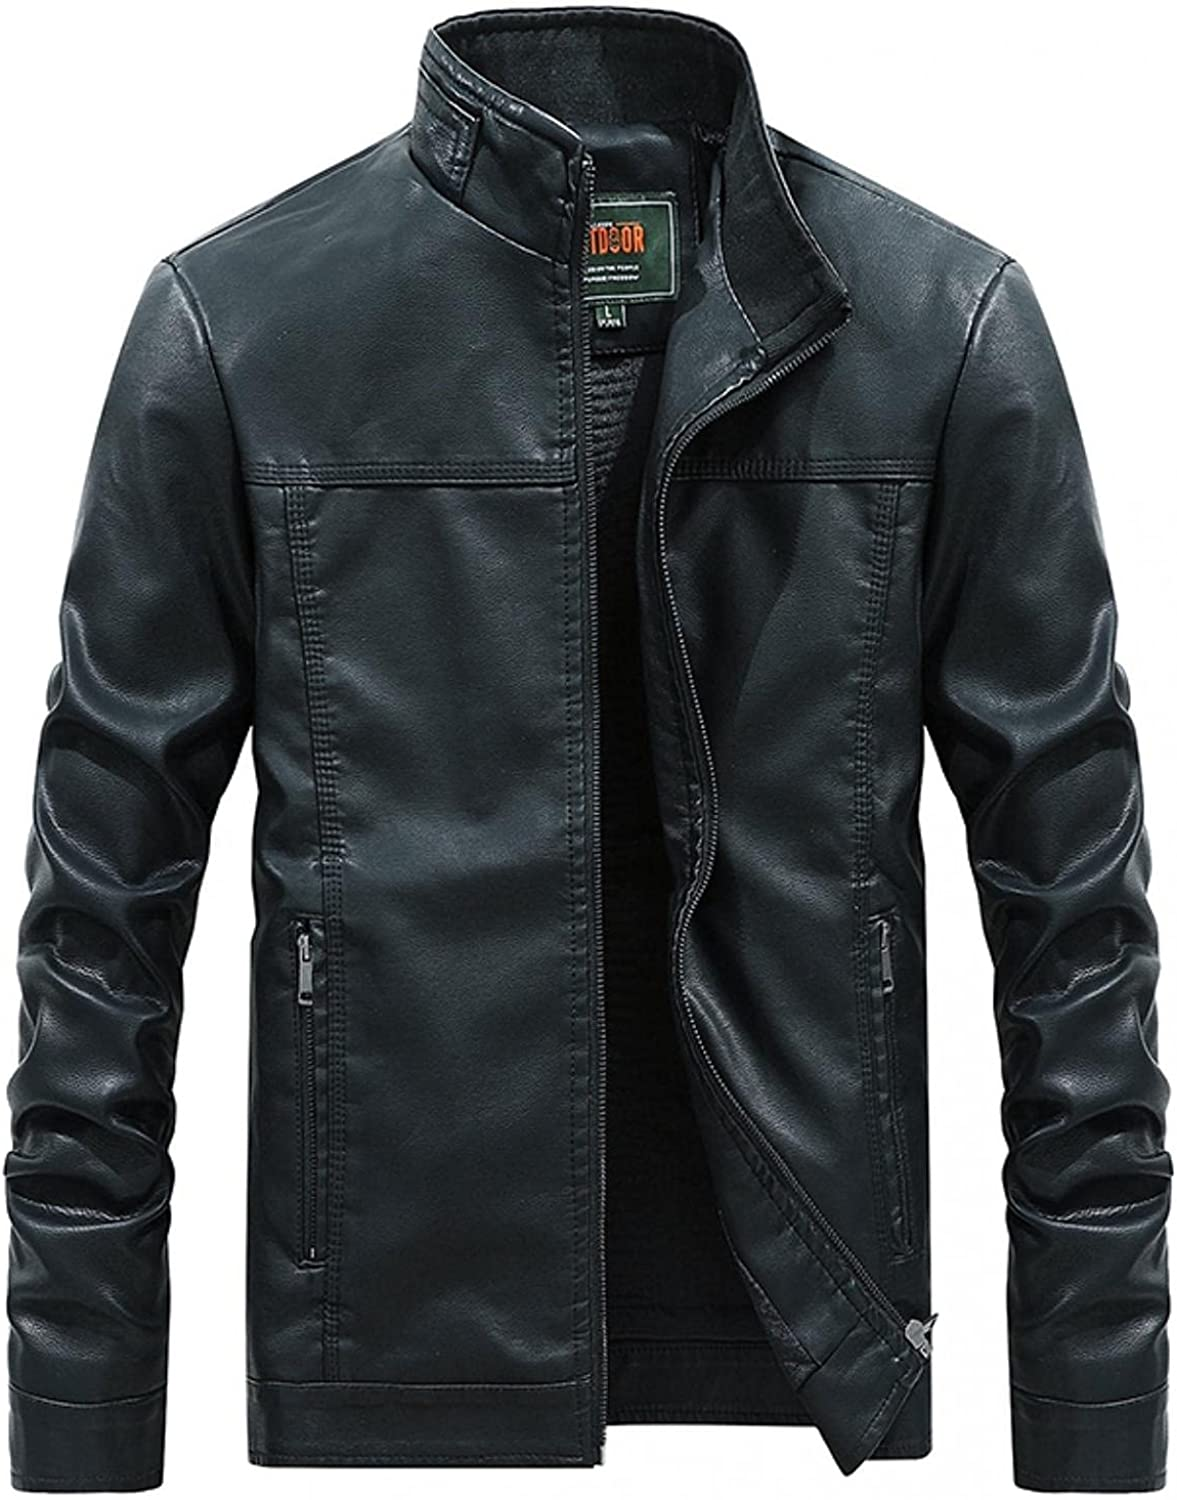 Jackets for Men Hoodies for Men Men's Solid Color Motorcycle Jacket Stand Collar Thick Leather Cool Jacket Fashion Hoodies